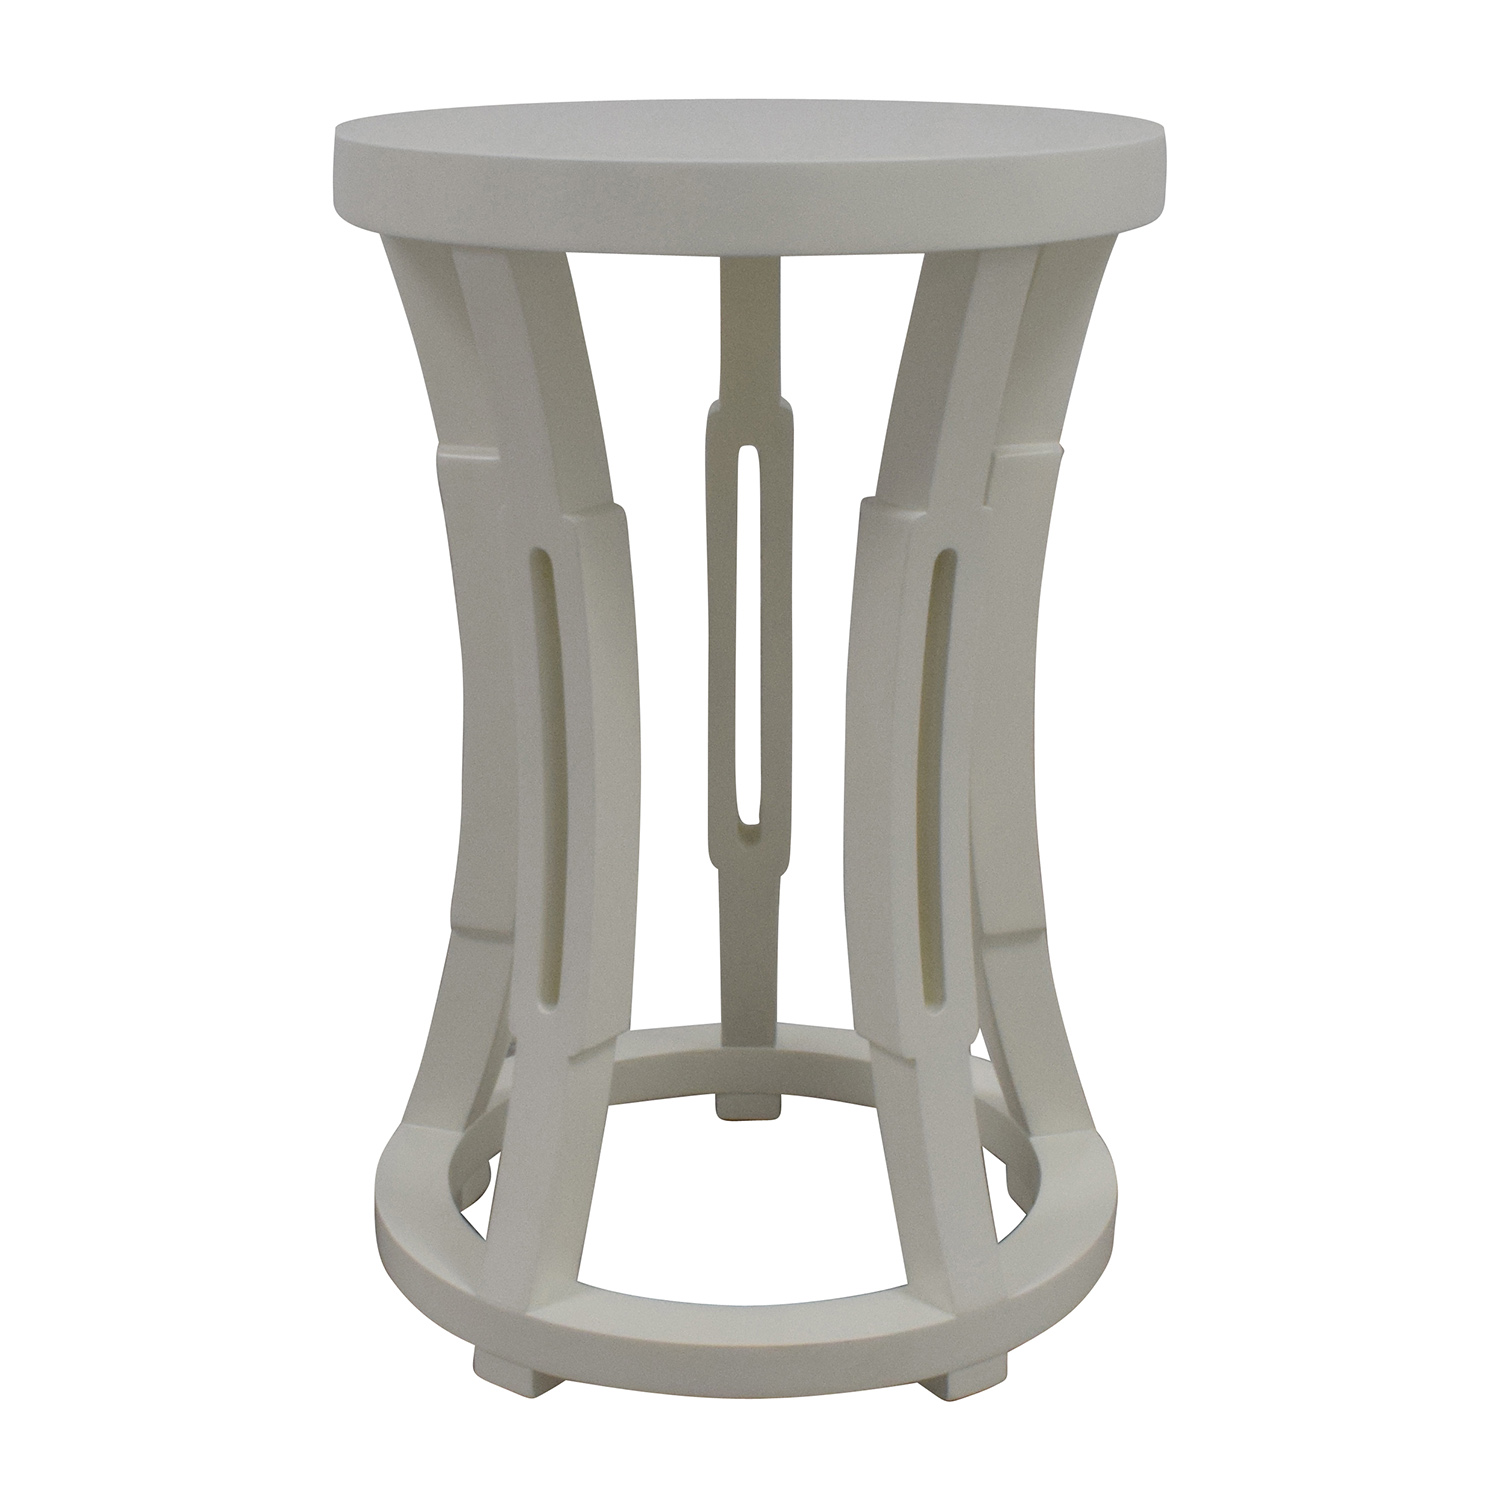 shop Bungalow 5 Hour Glass Stool Side Table or Stool Bungalow 5 Sofas